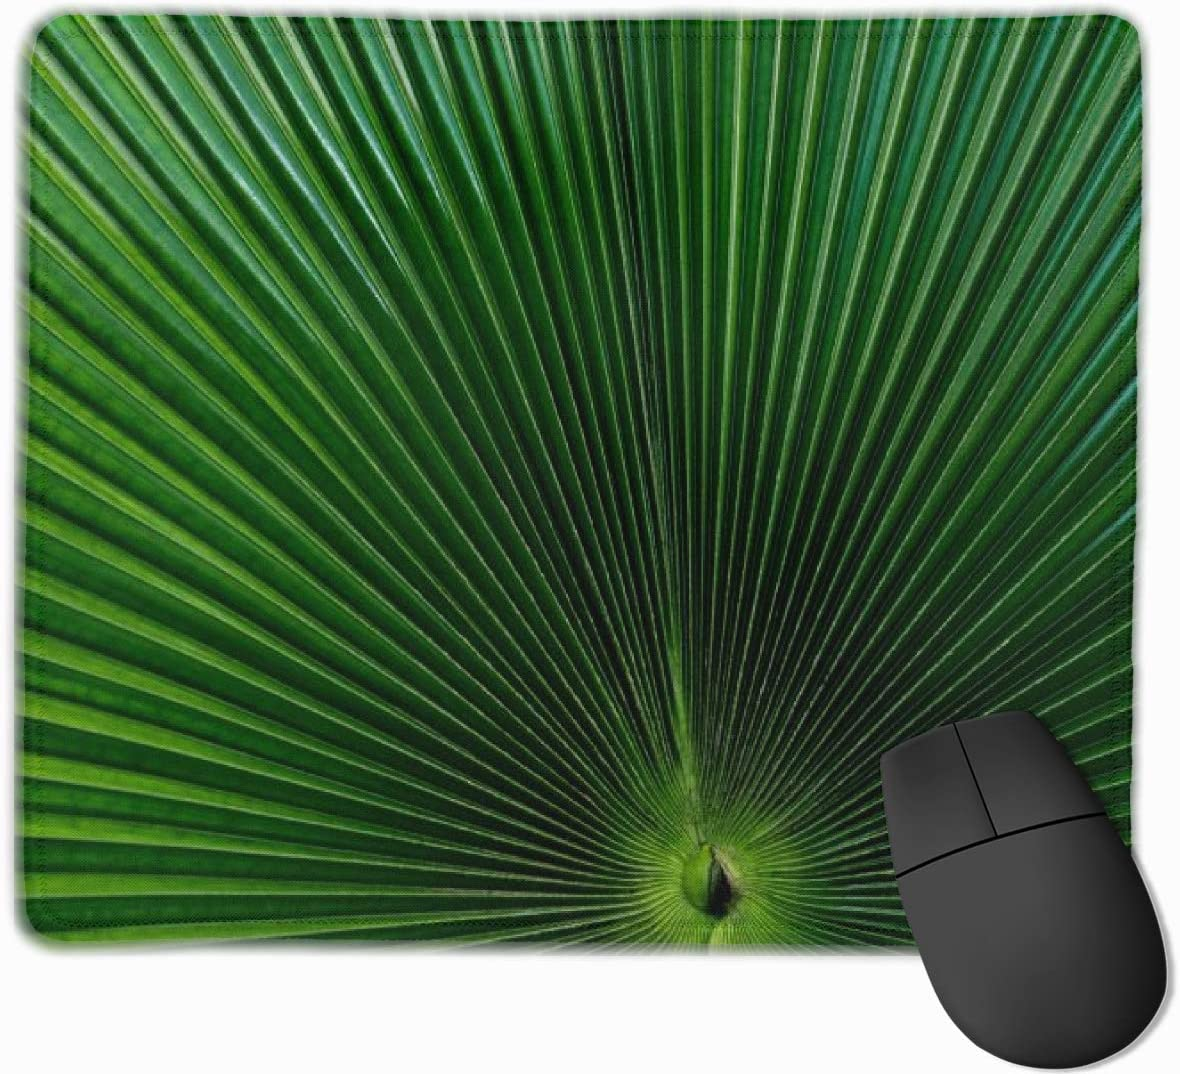 Cute Mouse Pad for Laptop Computer Non-Slip Small Home Travel Mouse Pads for Man Womengreen Fan Palm Leaf